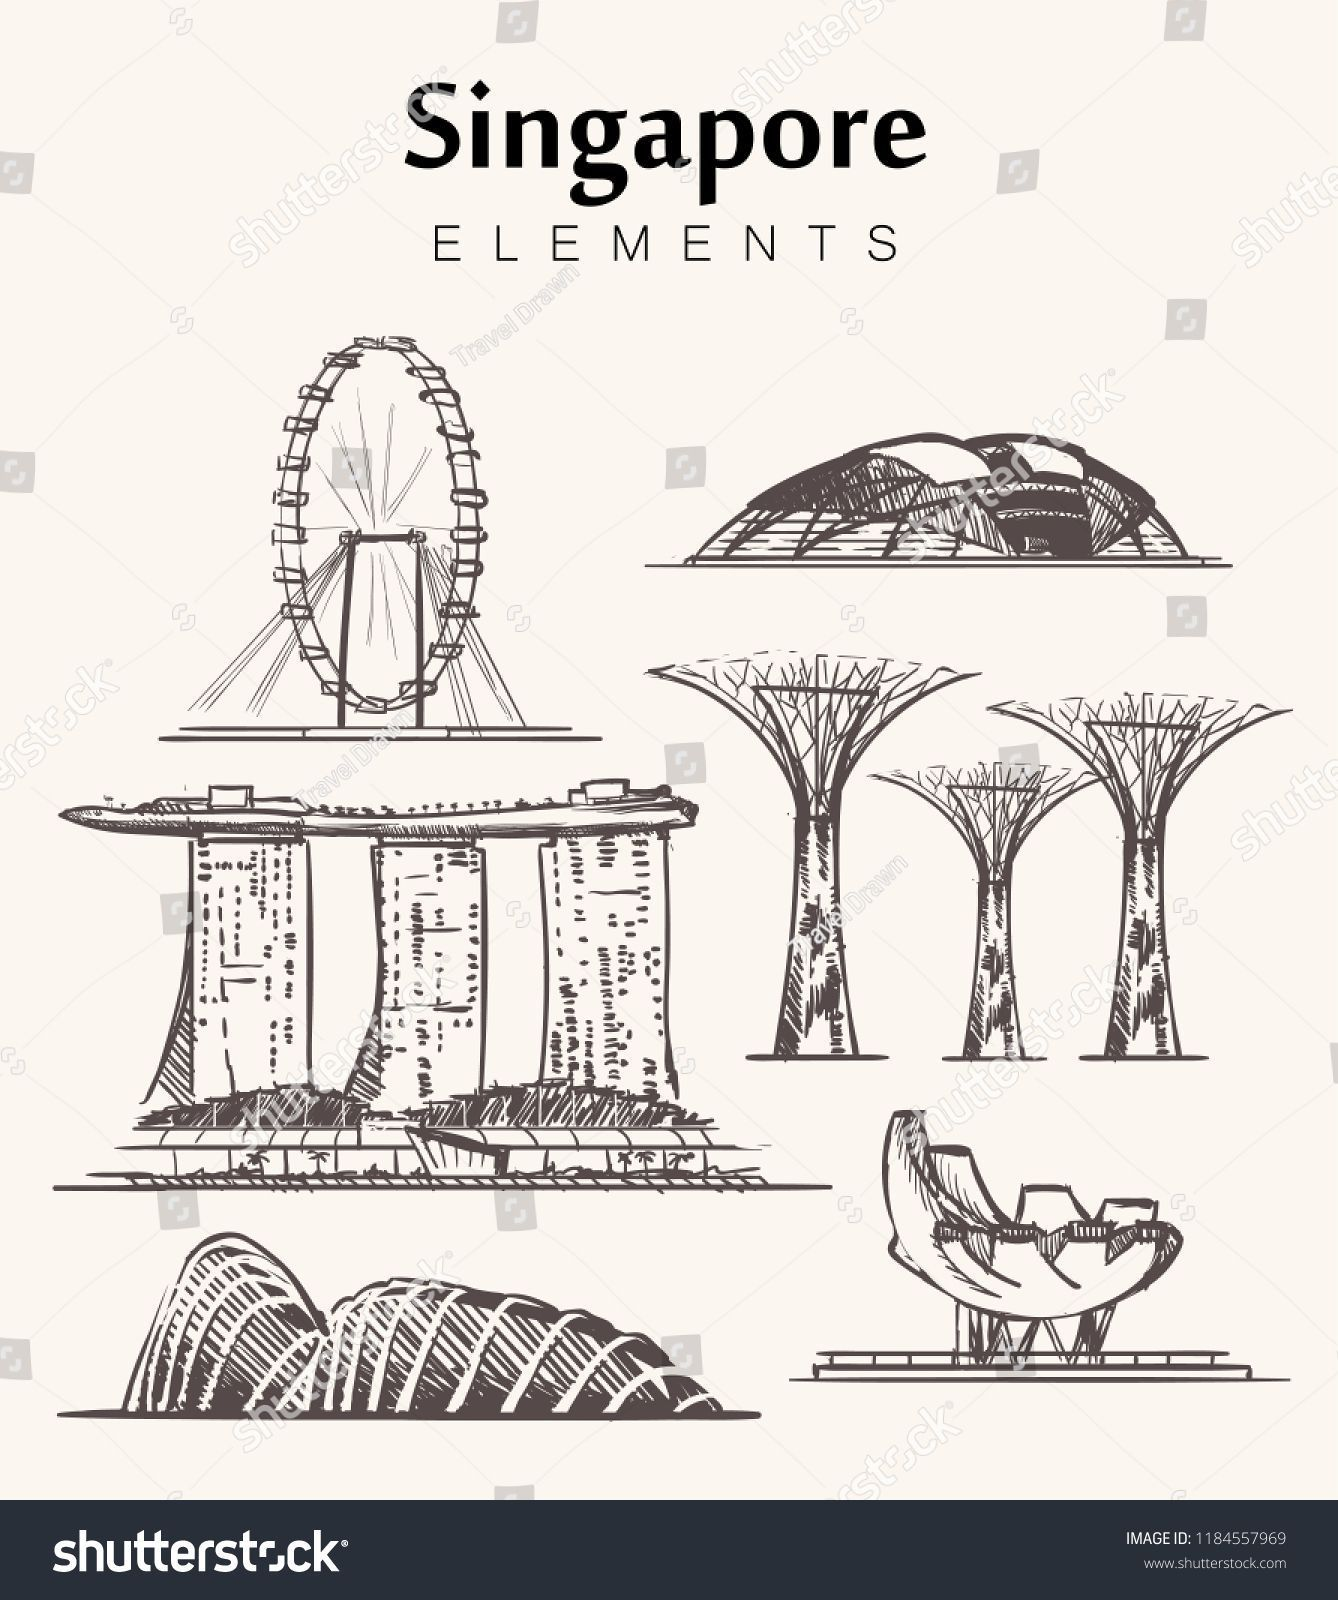 b818d051974645ab7cd0af4555c82f85 - Gardens By The Bay To Singapore Flyer